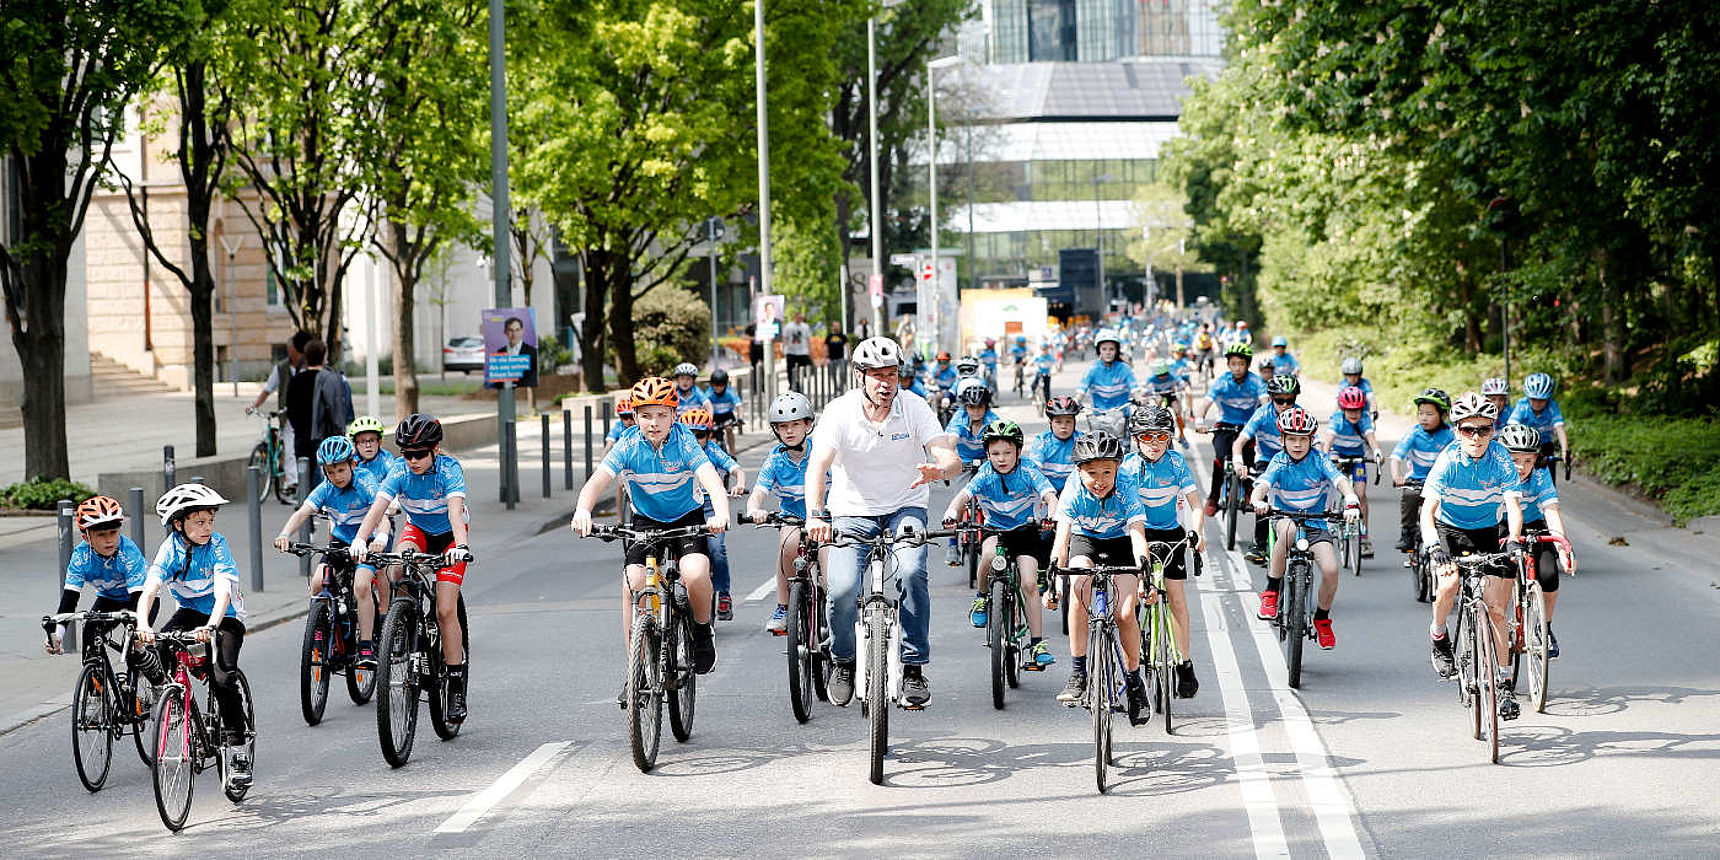 kinder+Sport mini tour Bike Parade bei Eschborn-Frankfurt